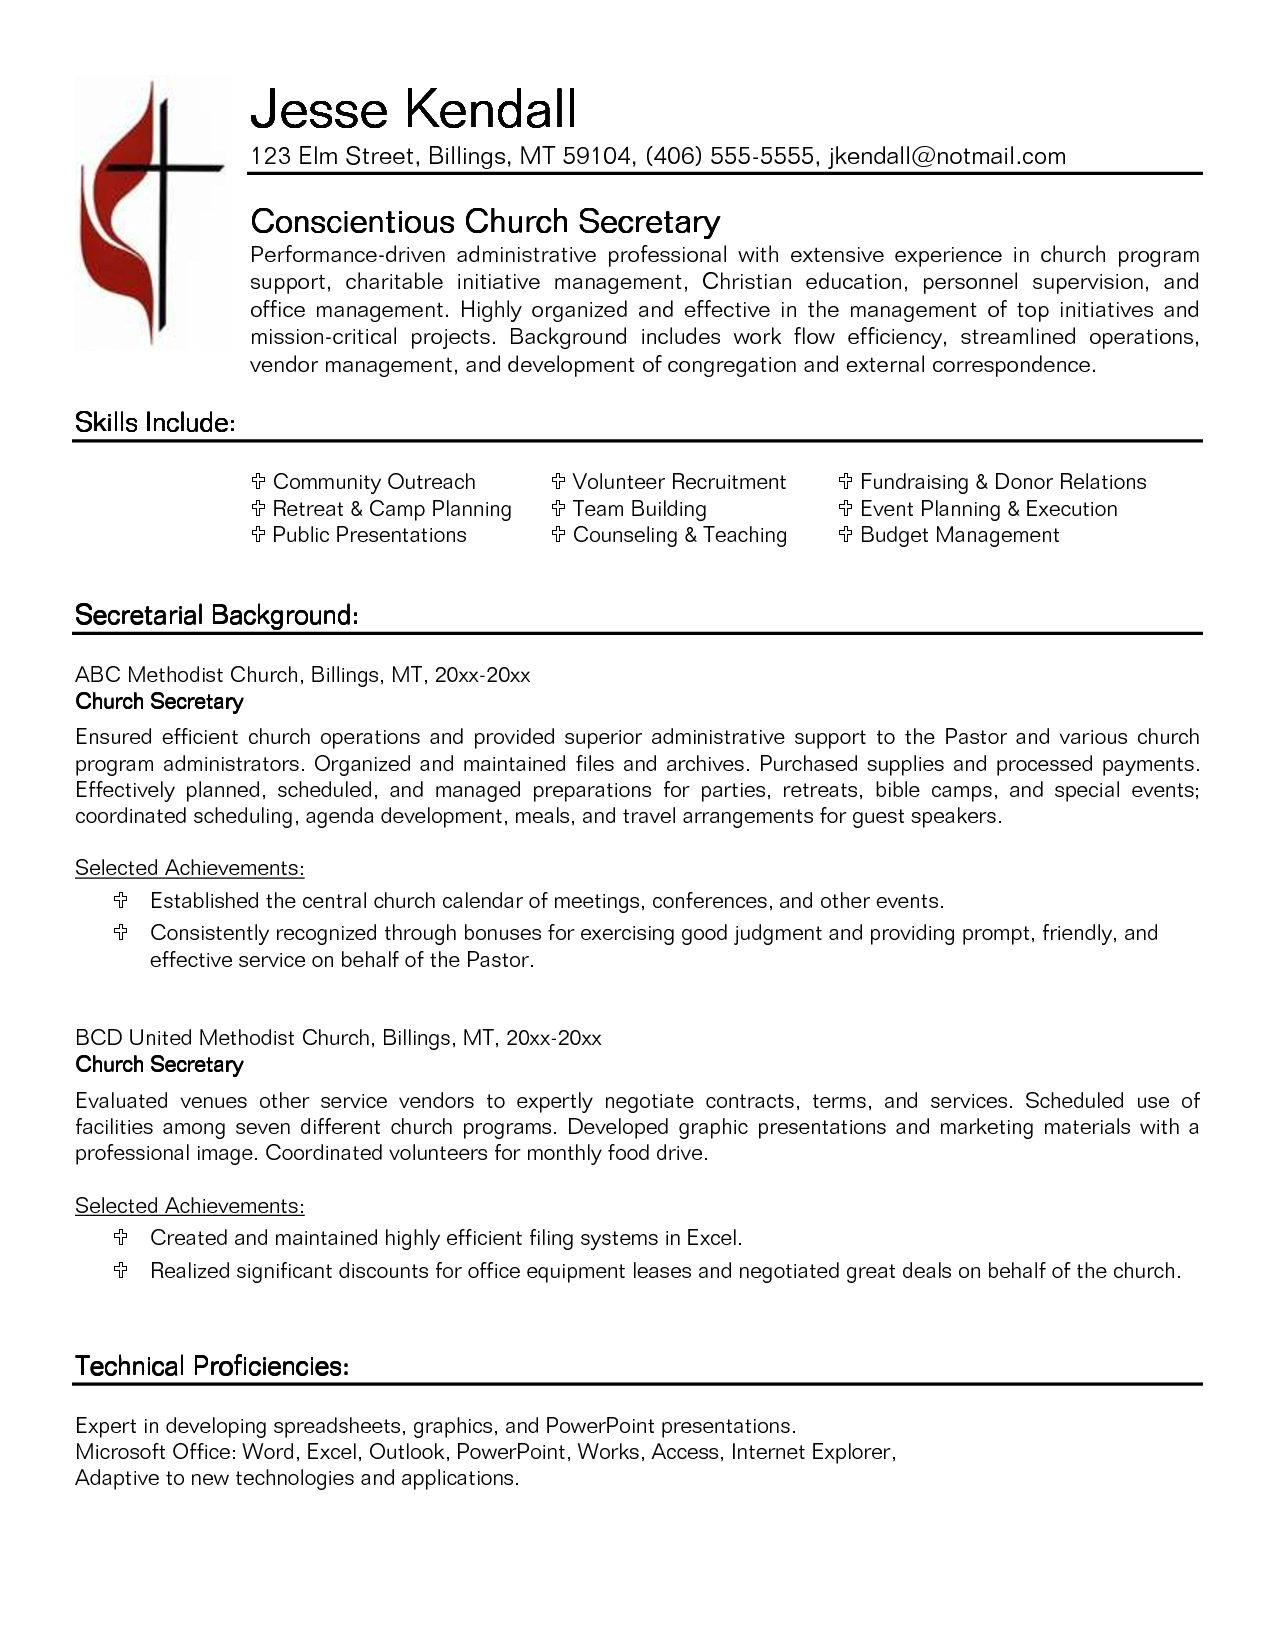 School Secretary Cover Letter Template - Secretary Resume Examples 8 Example Sample Legal Secretary Resumes